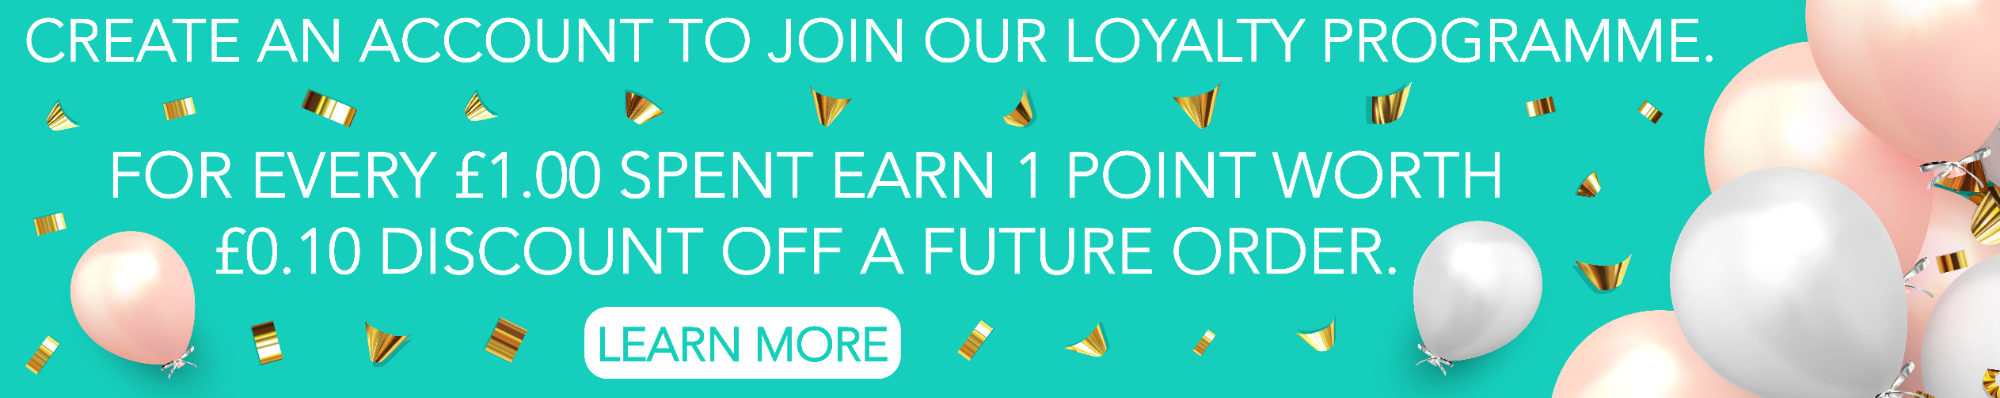 Loyalty Programme Banner Image